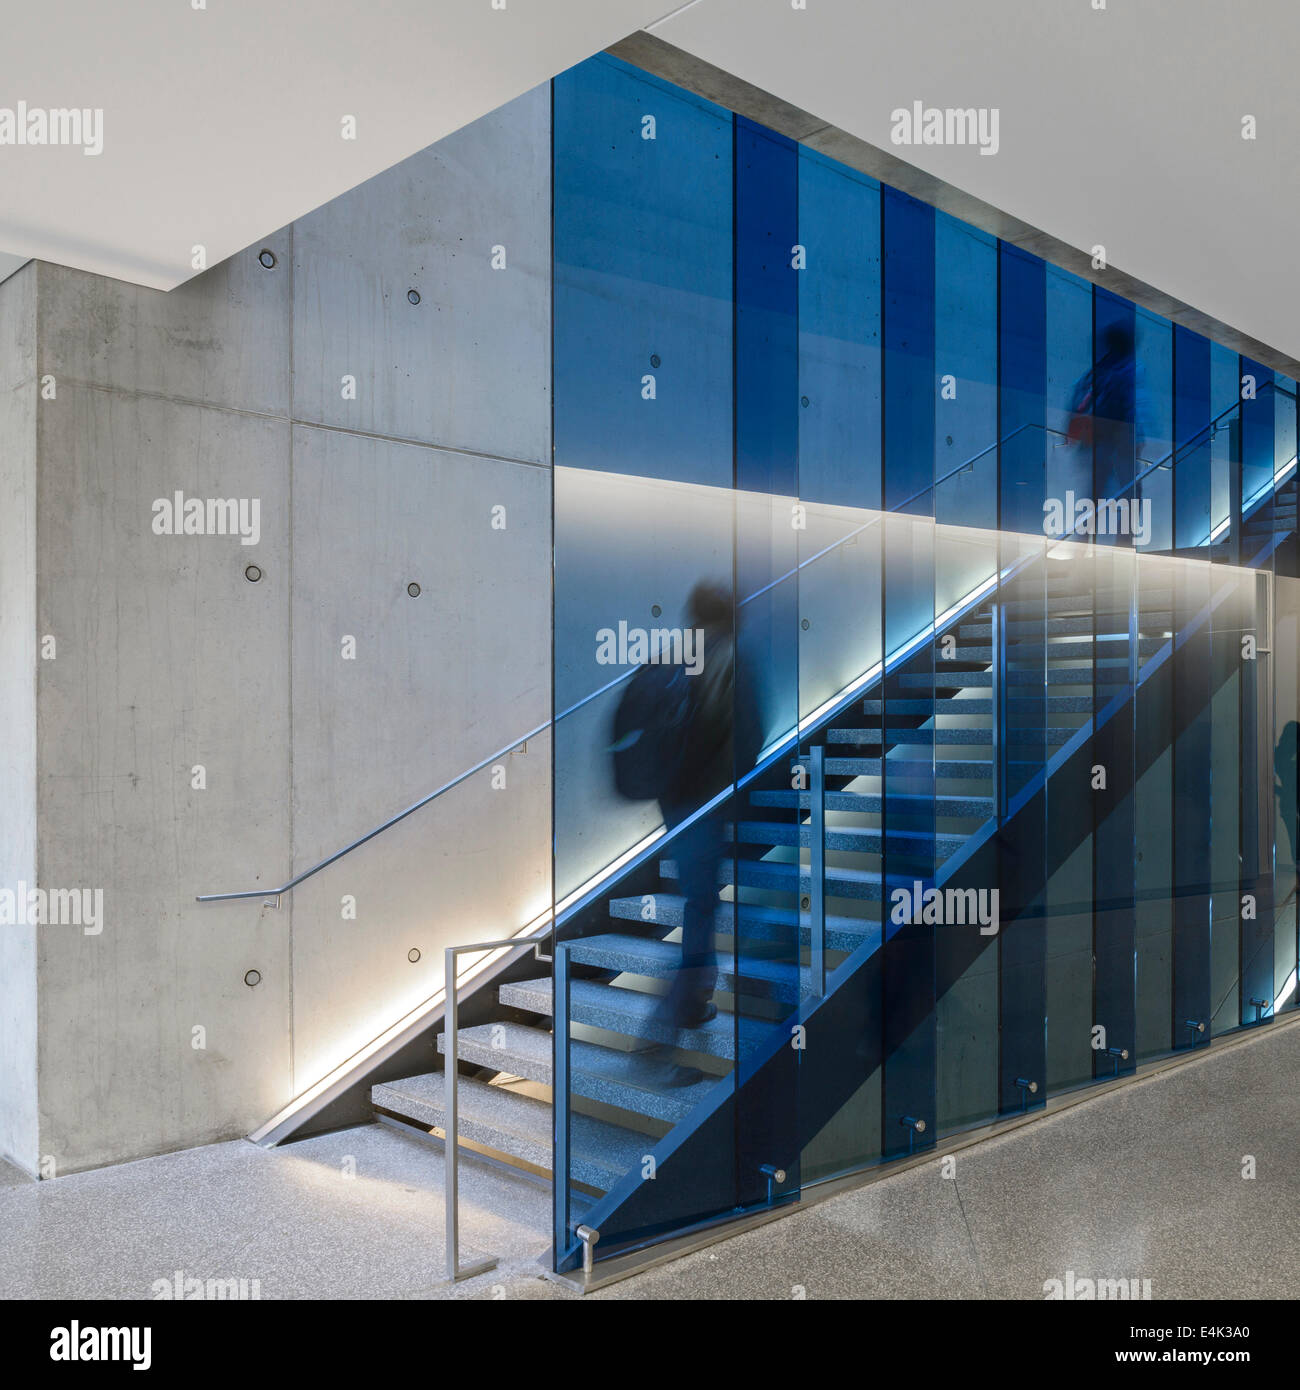 Mike & Ophelia Lazaridis Quantum-Nano Centre, Waterloo, Canada. Architect: KPMB Architects, 2012. - Stock Image